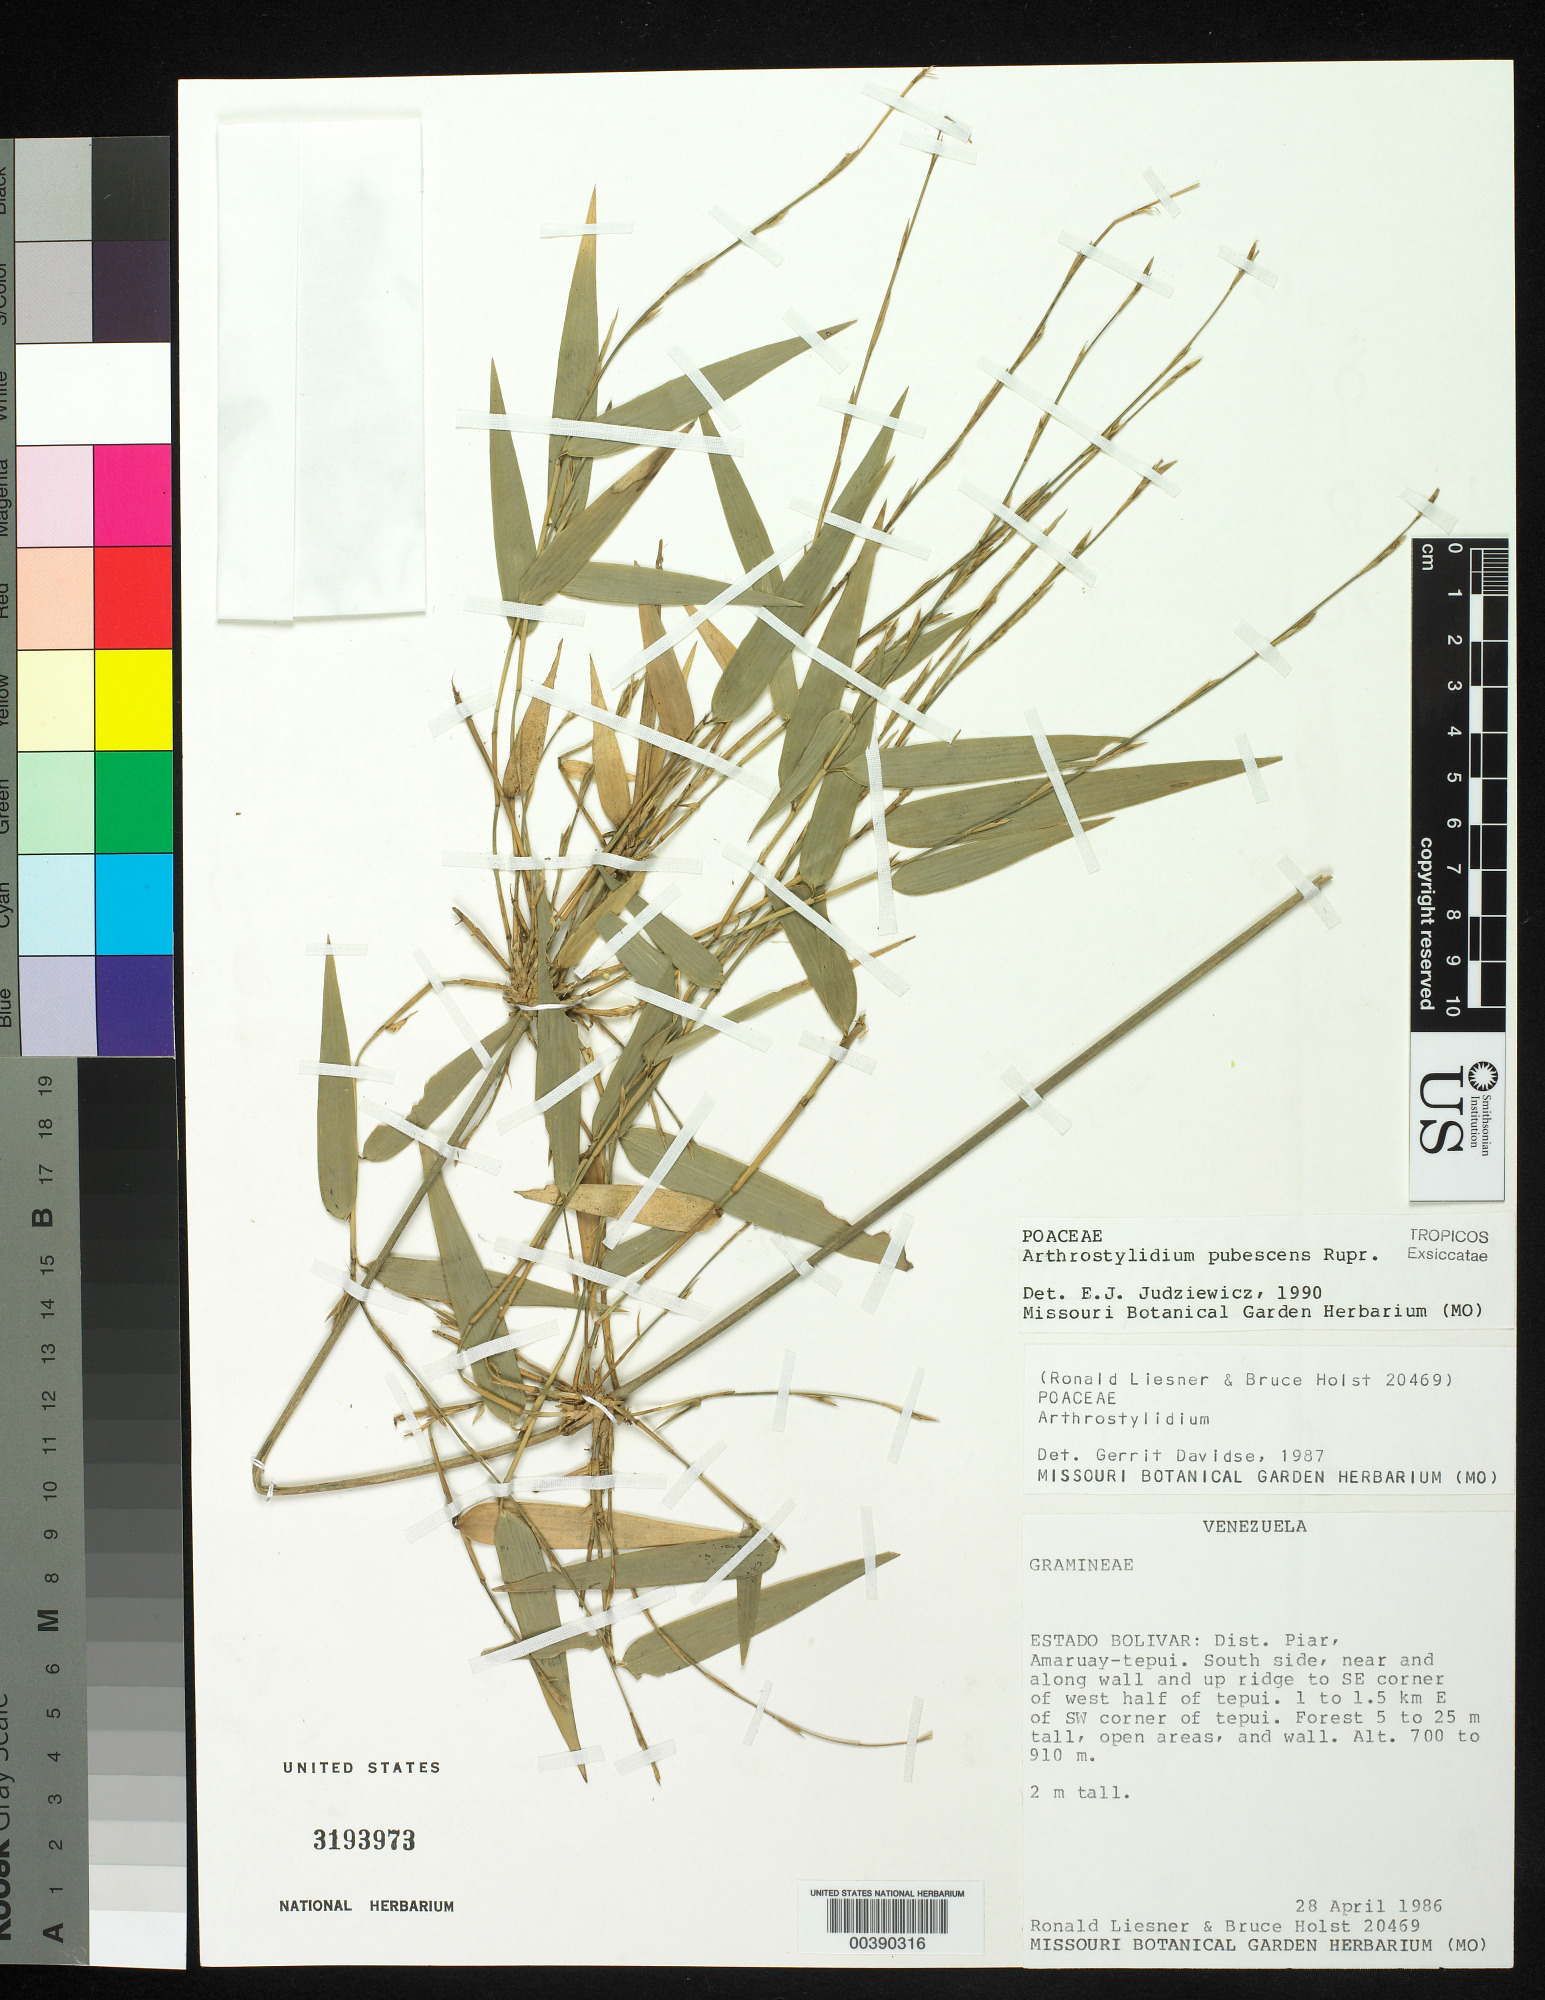 images for Arthrostylidium pubescens Rupr.